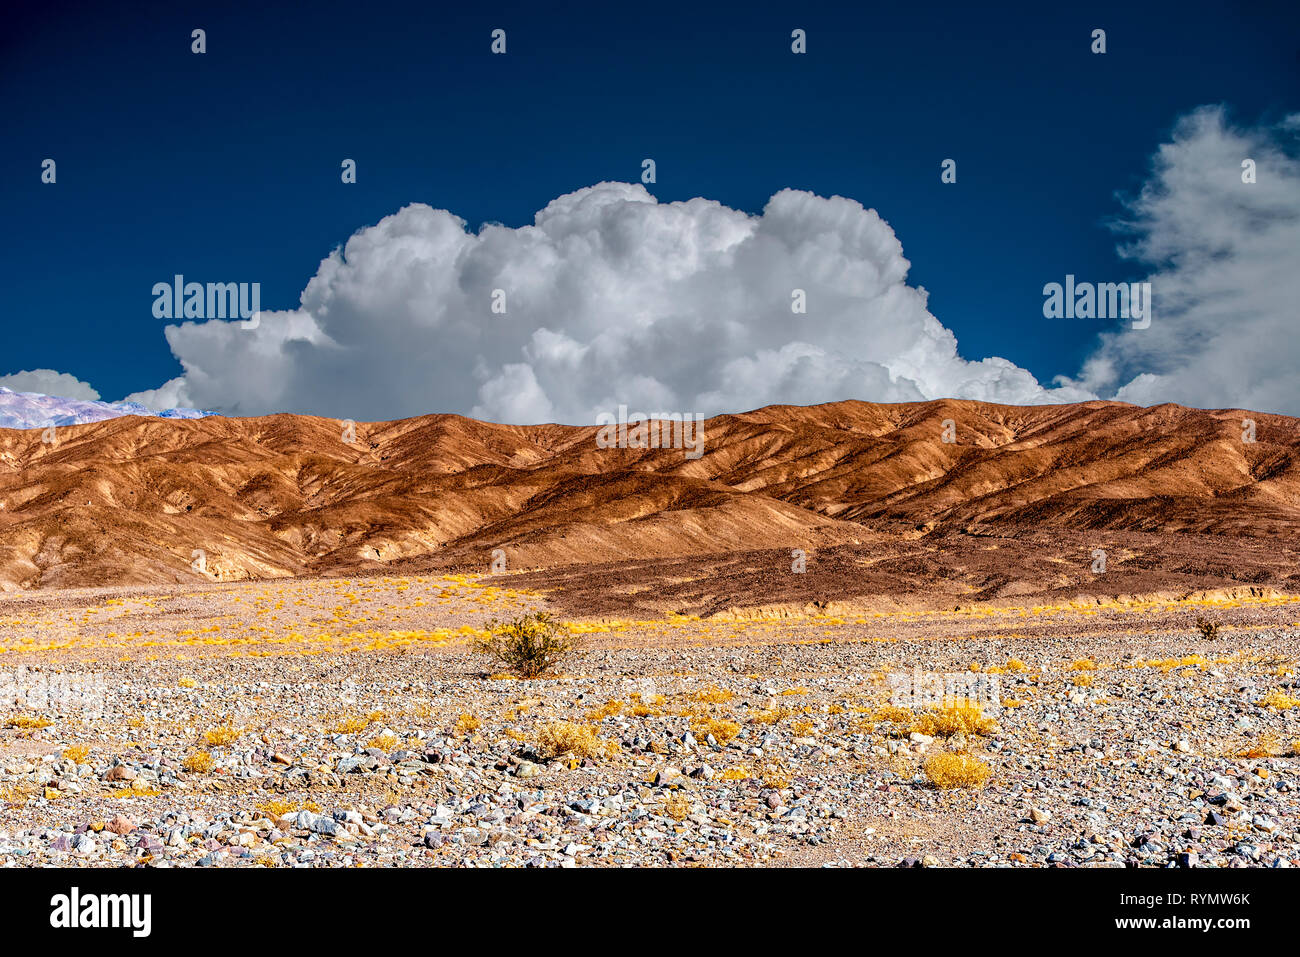 Rocky fields with yellow vegetation and barren brown mountains under bright blue sky with white fluffy clouds. - Stock Image